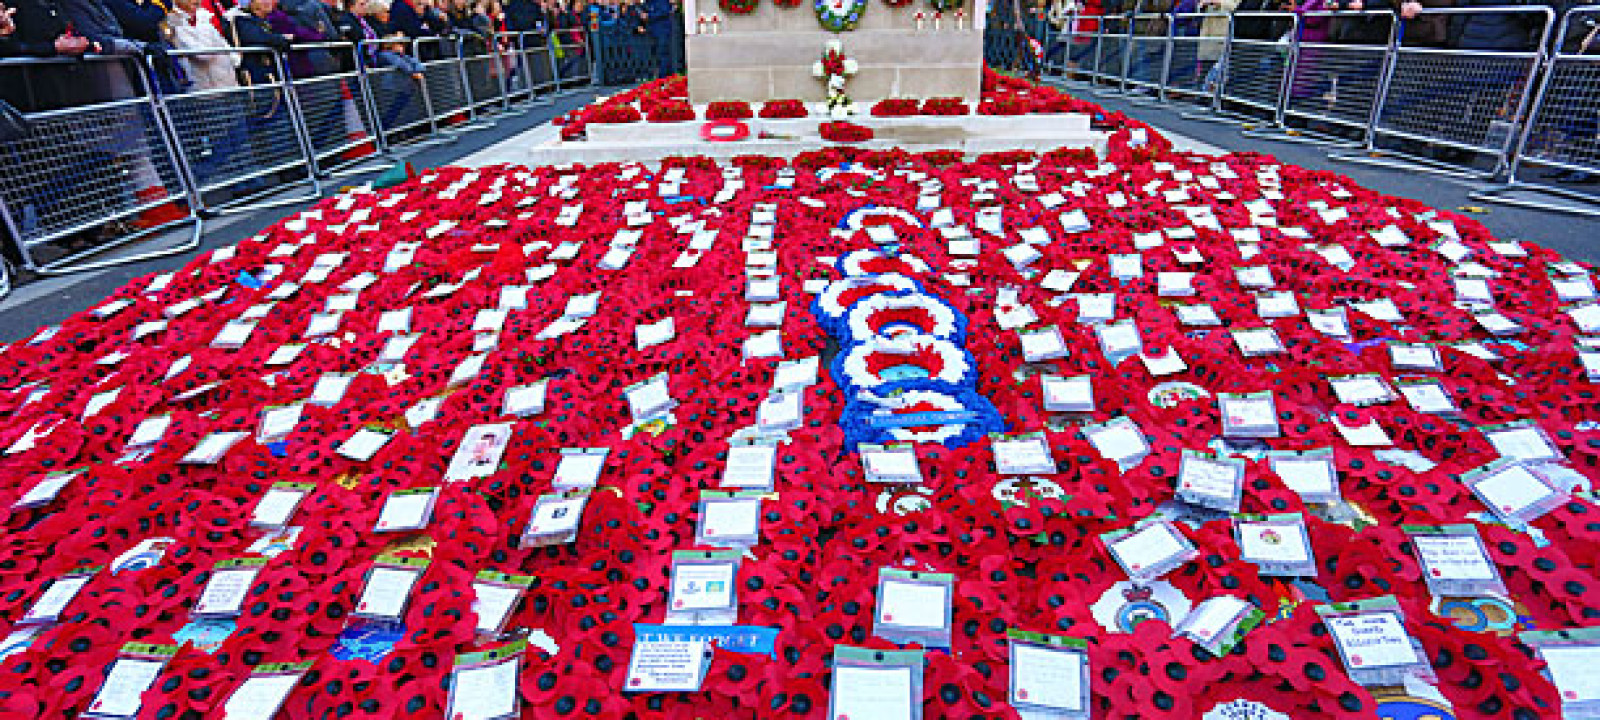 Poppies at the Cenotaph